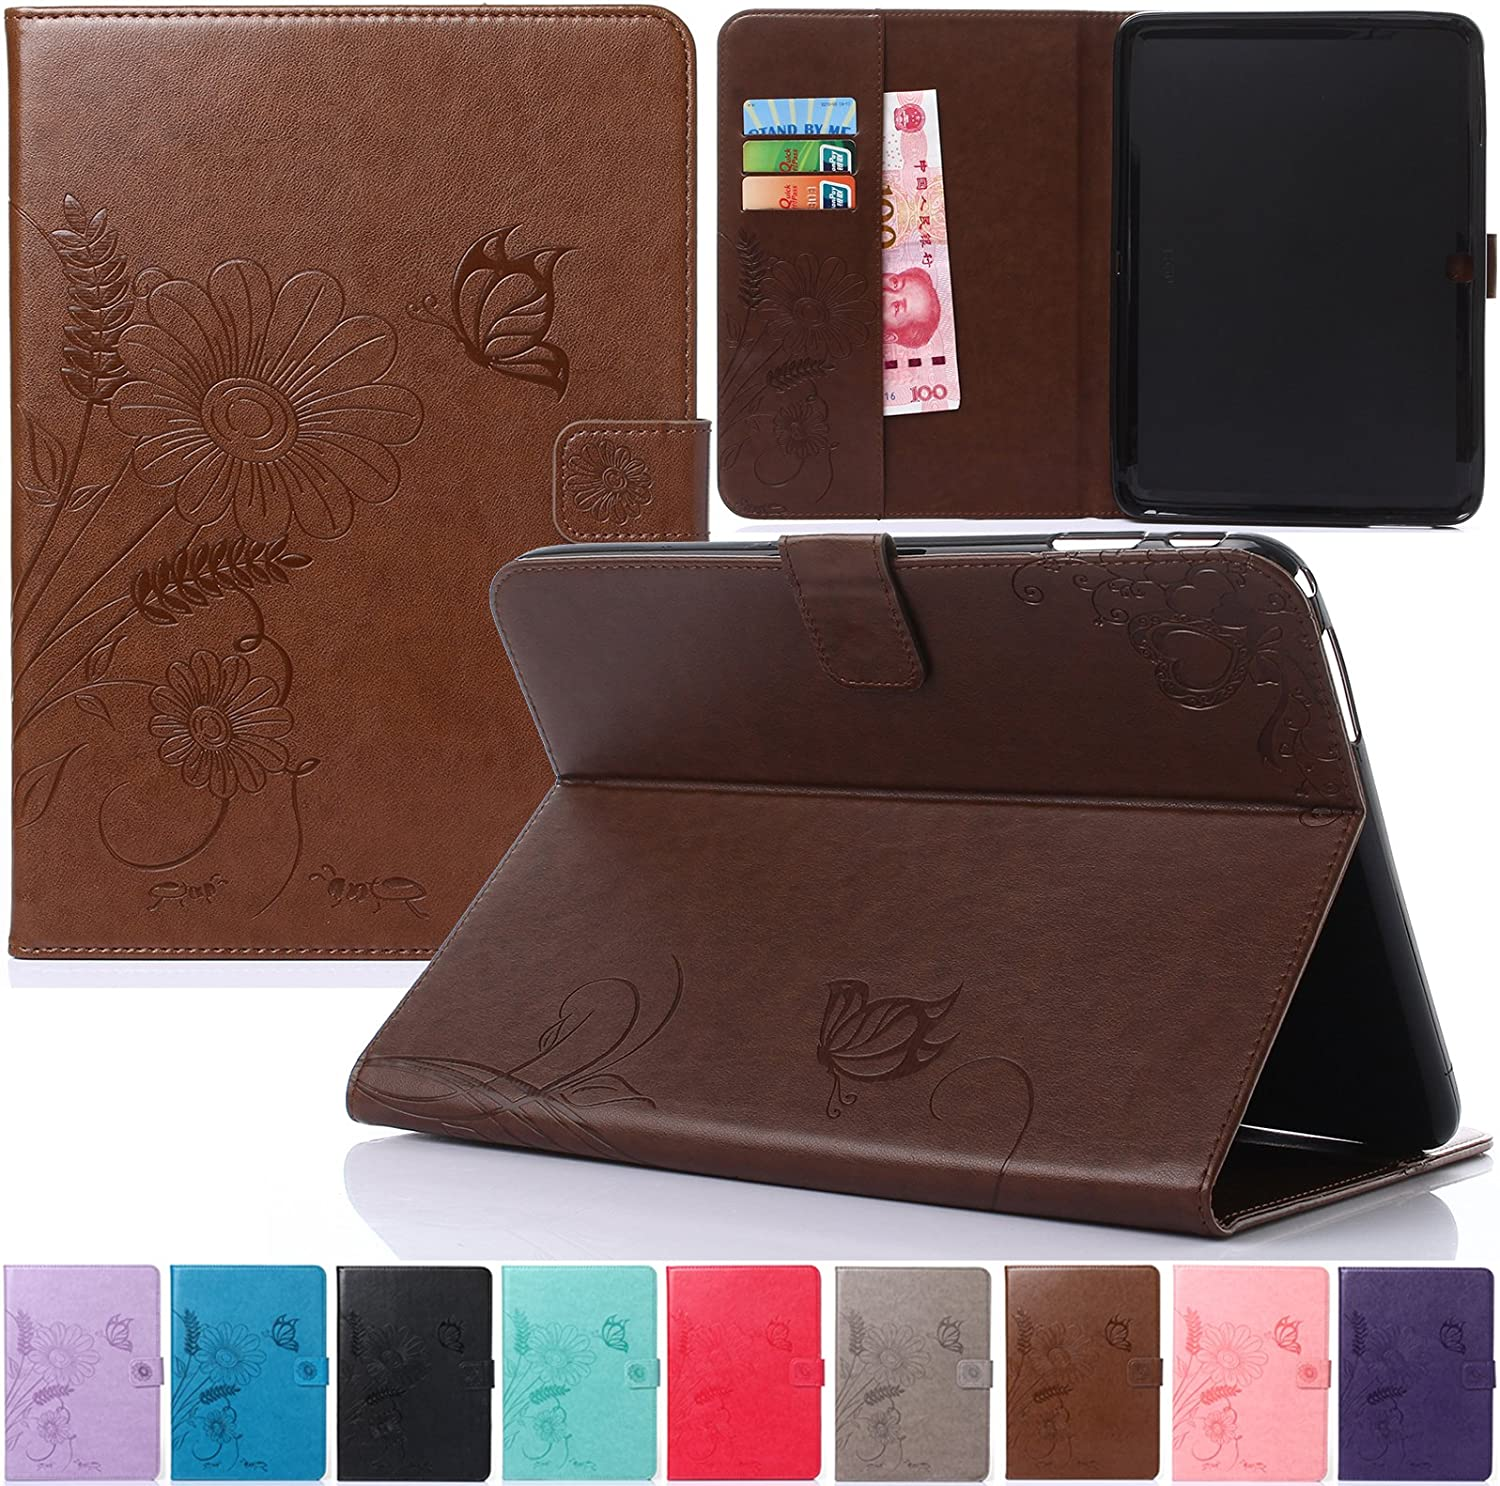 Galaxy Tab 4 10.1 Case,Artyond PU Leather Protect Cover [Magnet Closure]Butterfly Embossed Cards Slots Wallet Case With [Auto Wake/Sleep Feature]Stand Case For Samsung Galaxy Tab 4 10.1 SM-T530(brown)